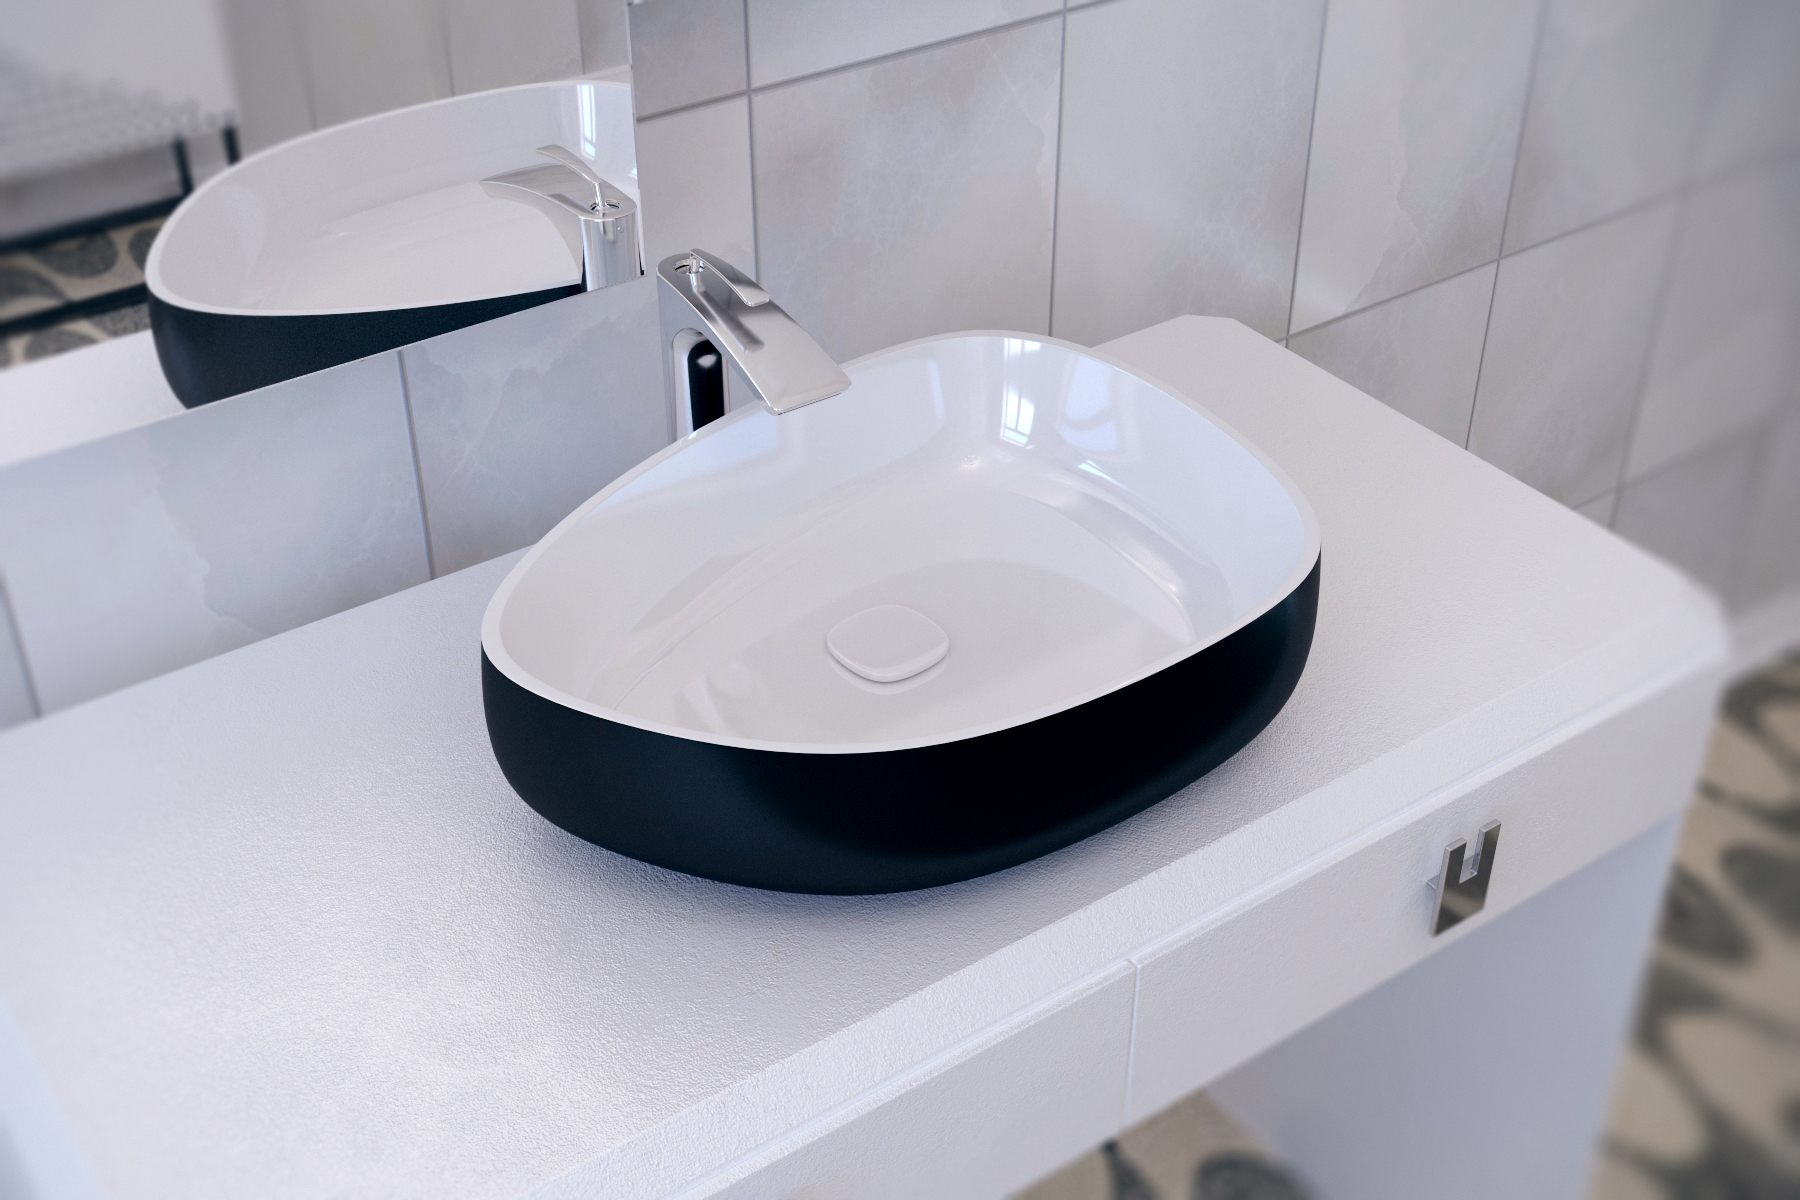 Metamorfosi-black-wht Shapeless Ceramic Bathroom Vessel Sink